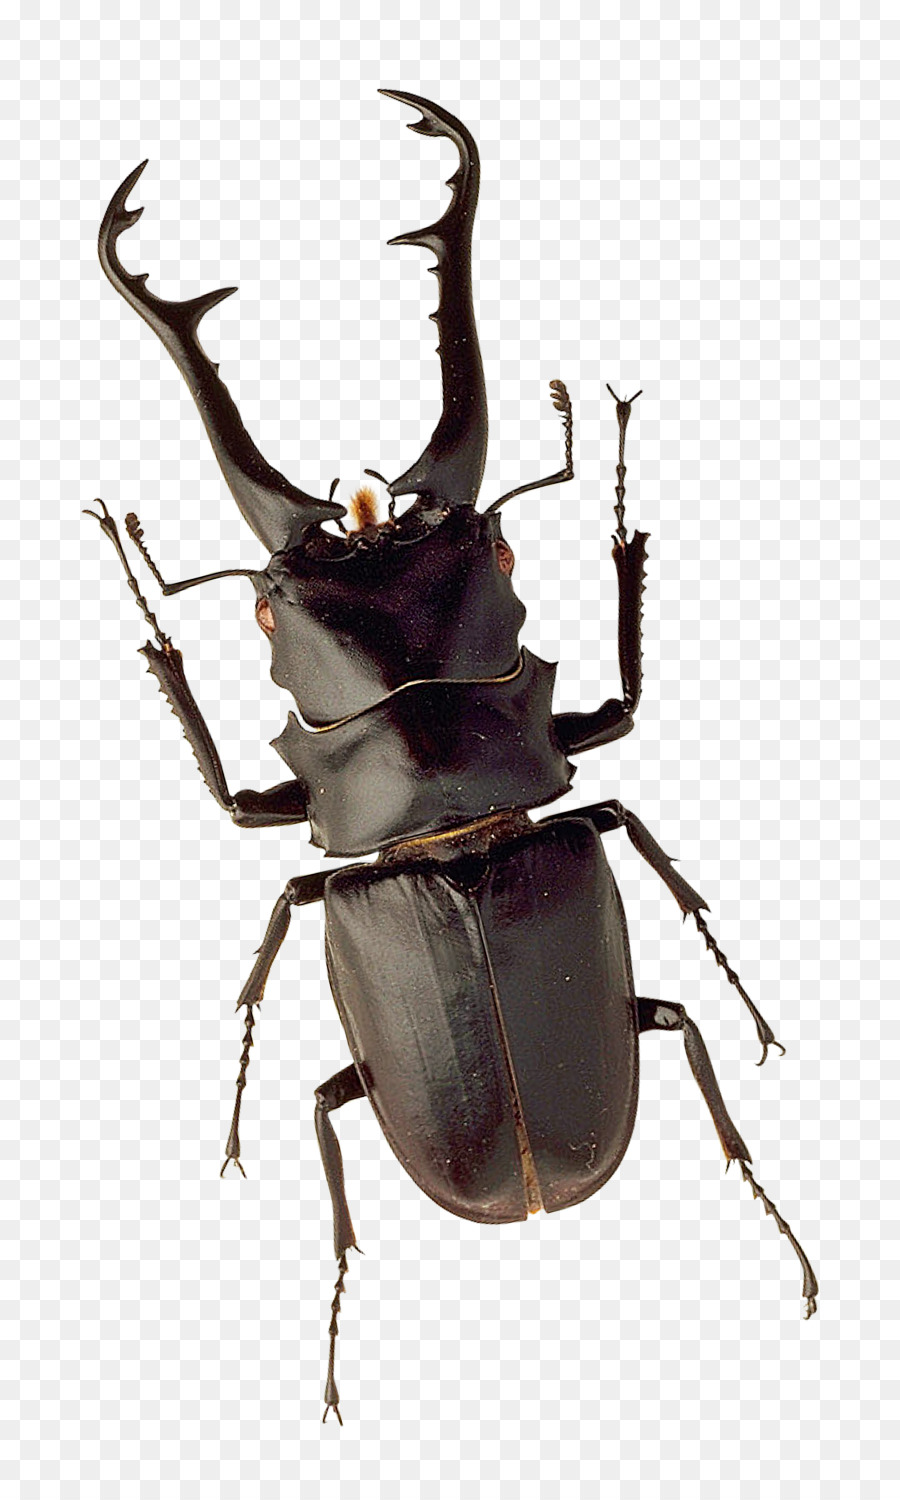 Portable Network Graphics clipart Beetle